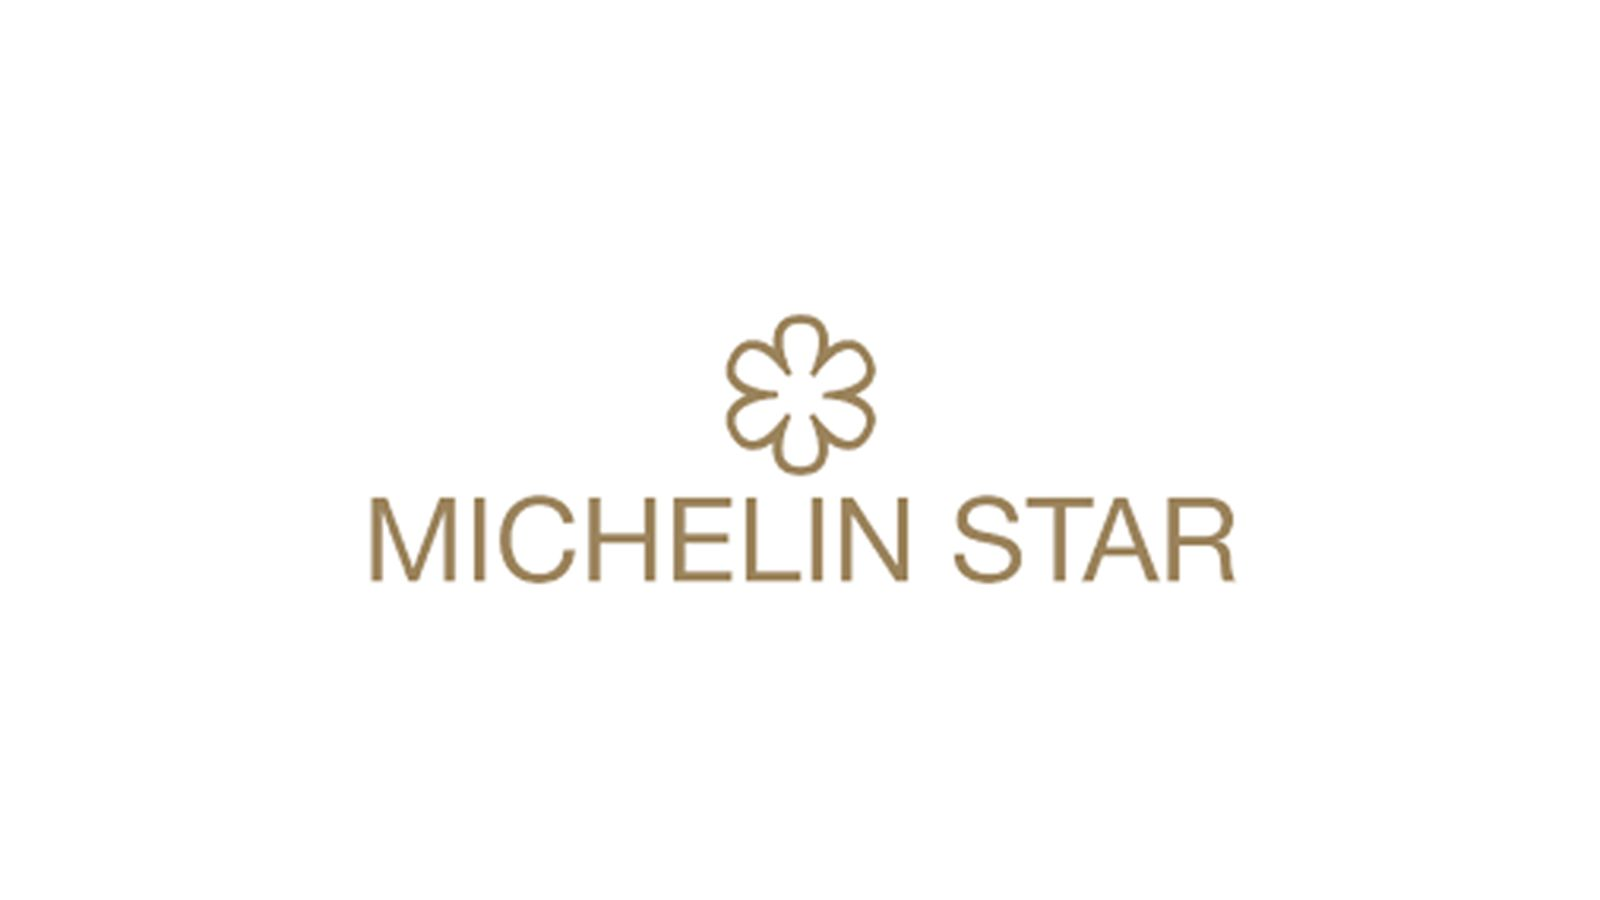 Michelin Star 2016 & 2017 at Winter Garden by Caino